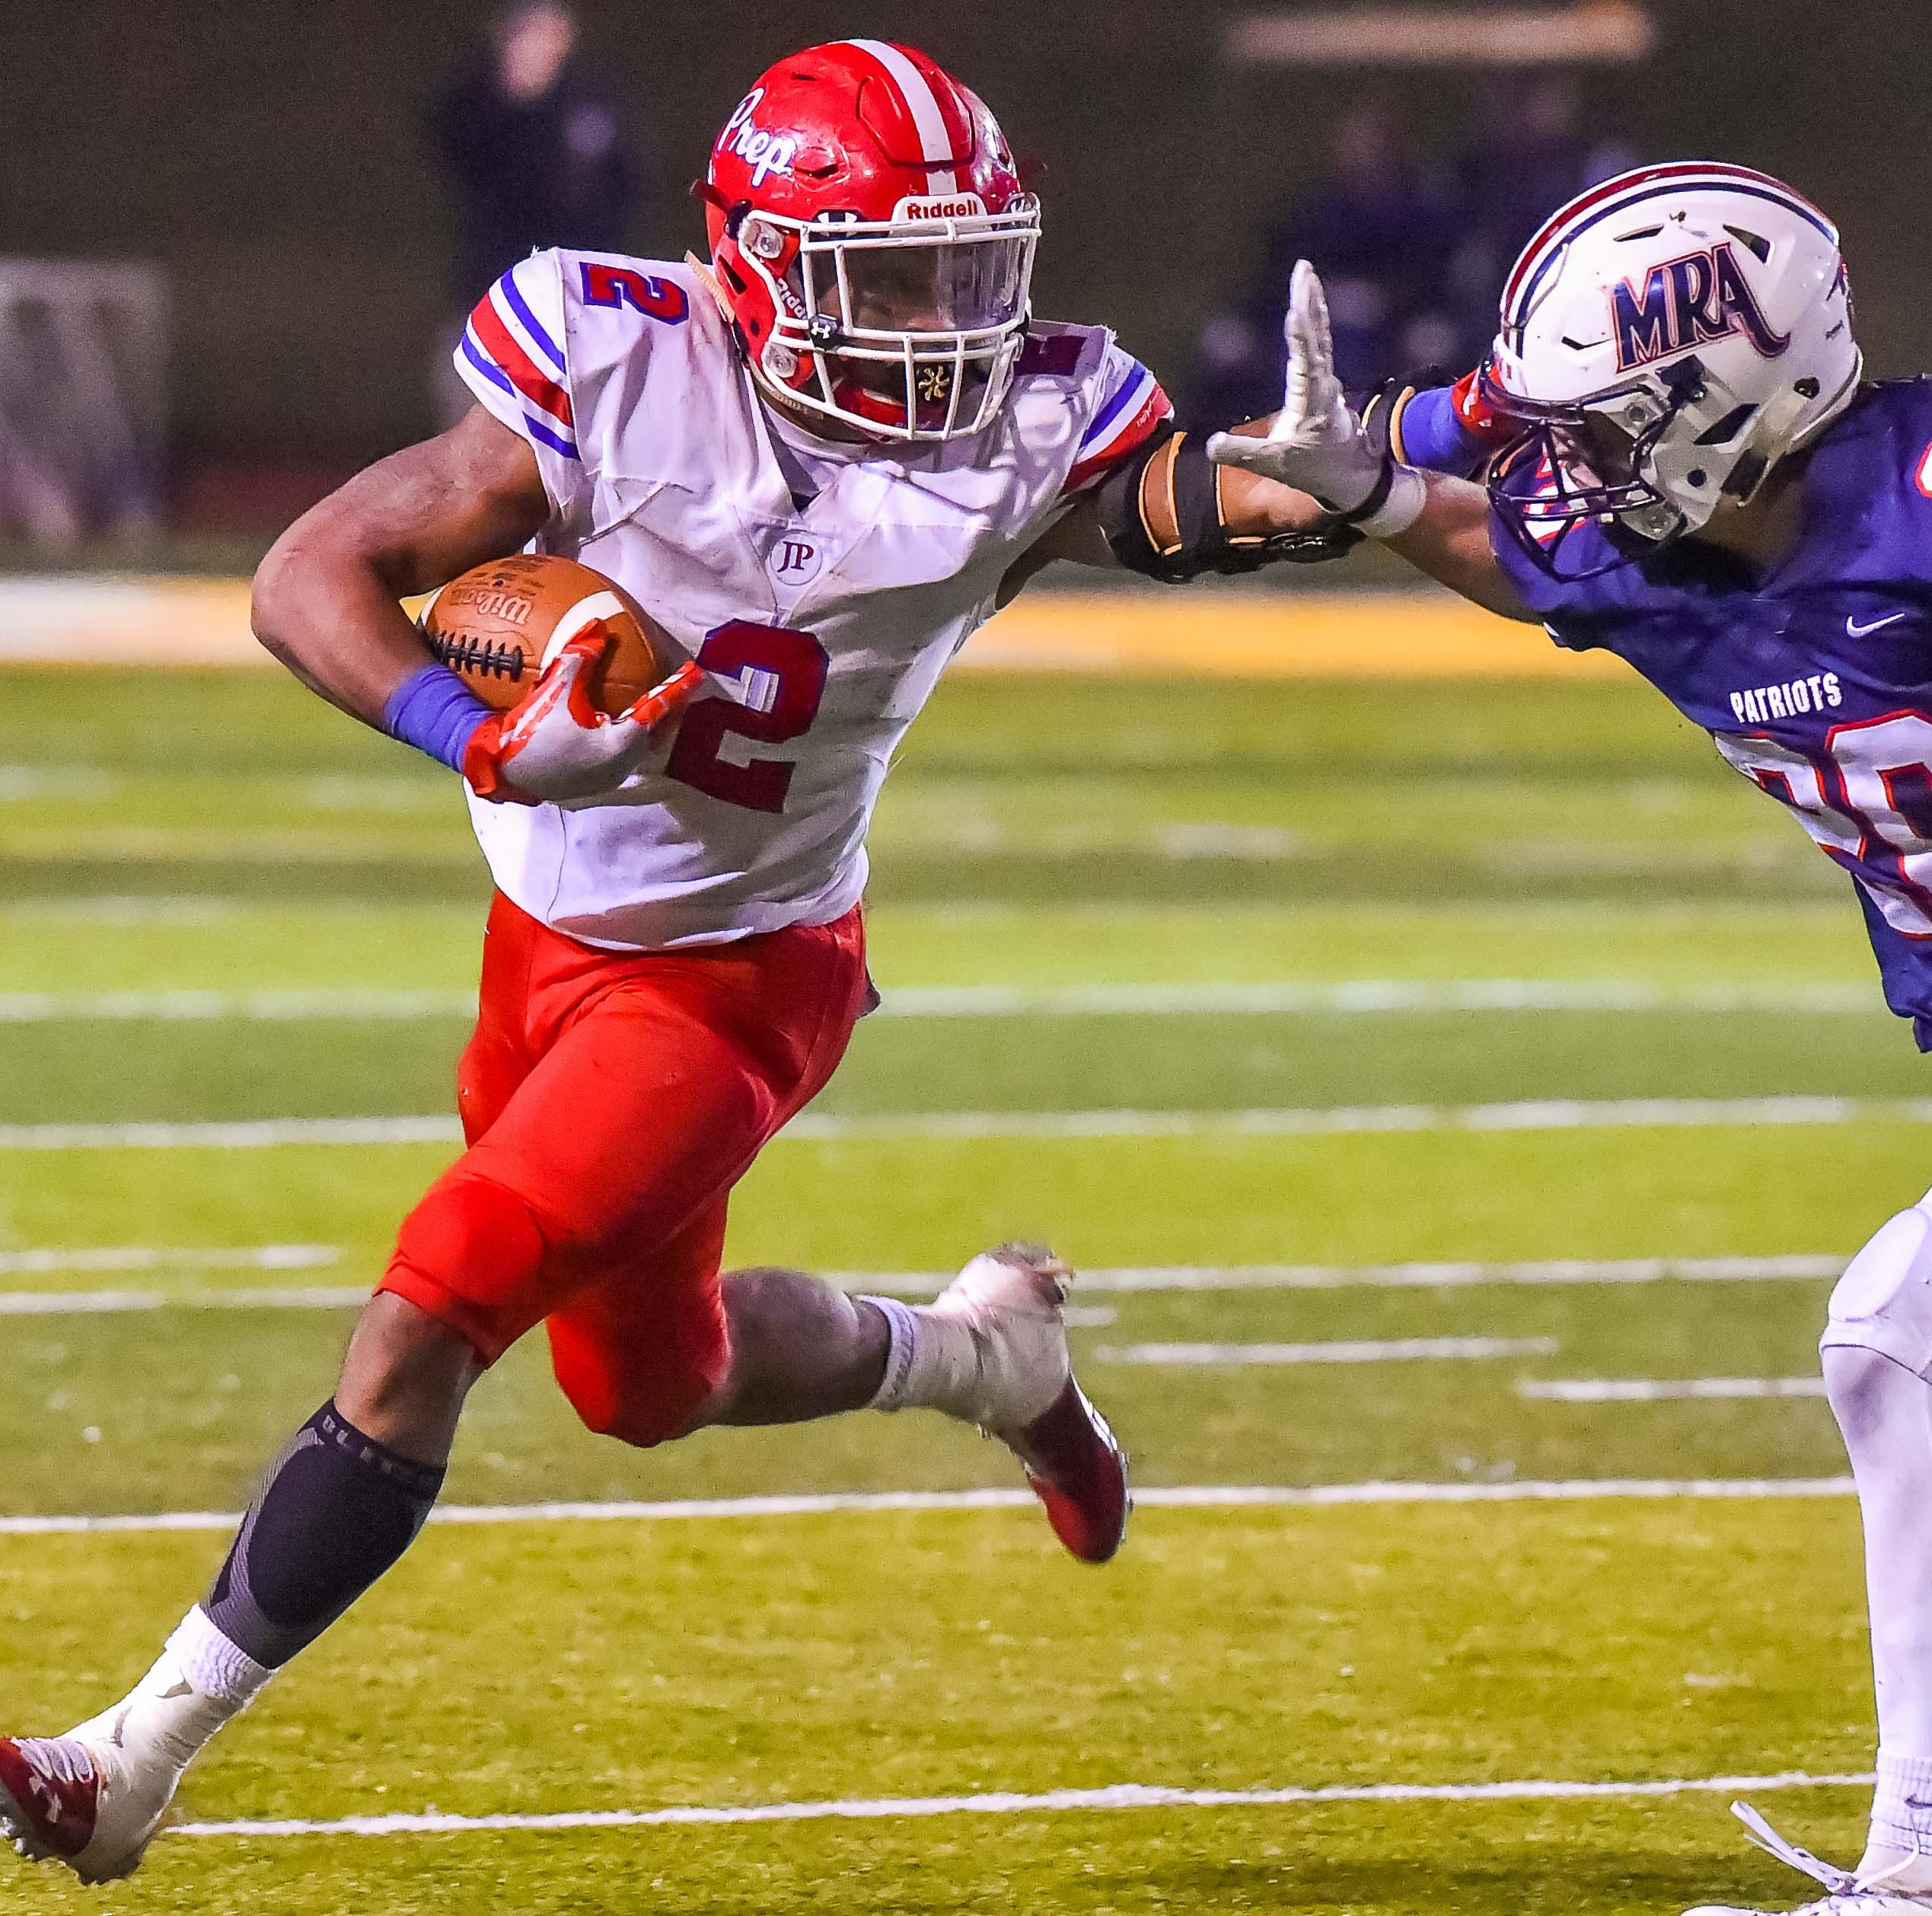 Jackson Prep's Jerrion Ealy (2) looks for running room against MRA's Hayes Puckett (20) during the MAIS Class AAAA Championship Football game held at Jackson Academy in Jackson, MS, Thursday November 16, 2018.(Bob Smith-For The Clarion Ledger)